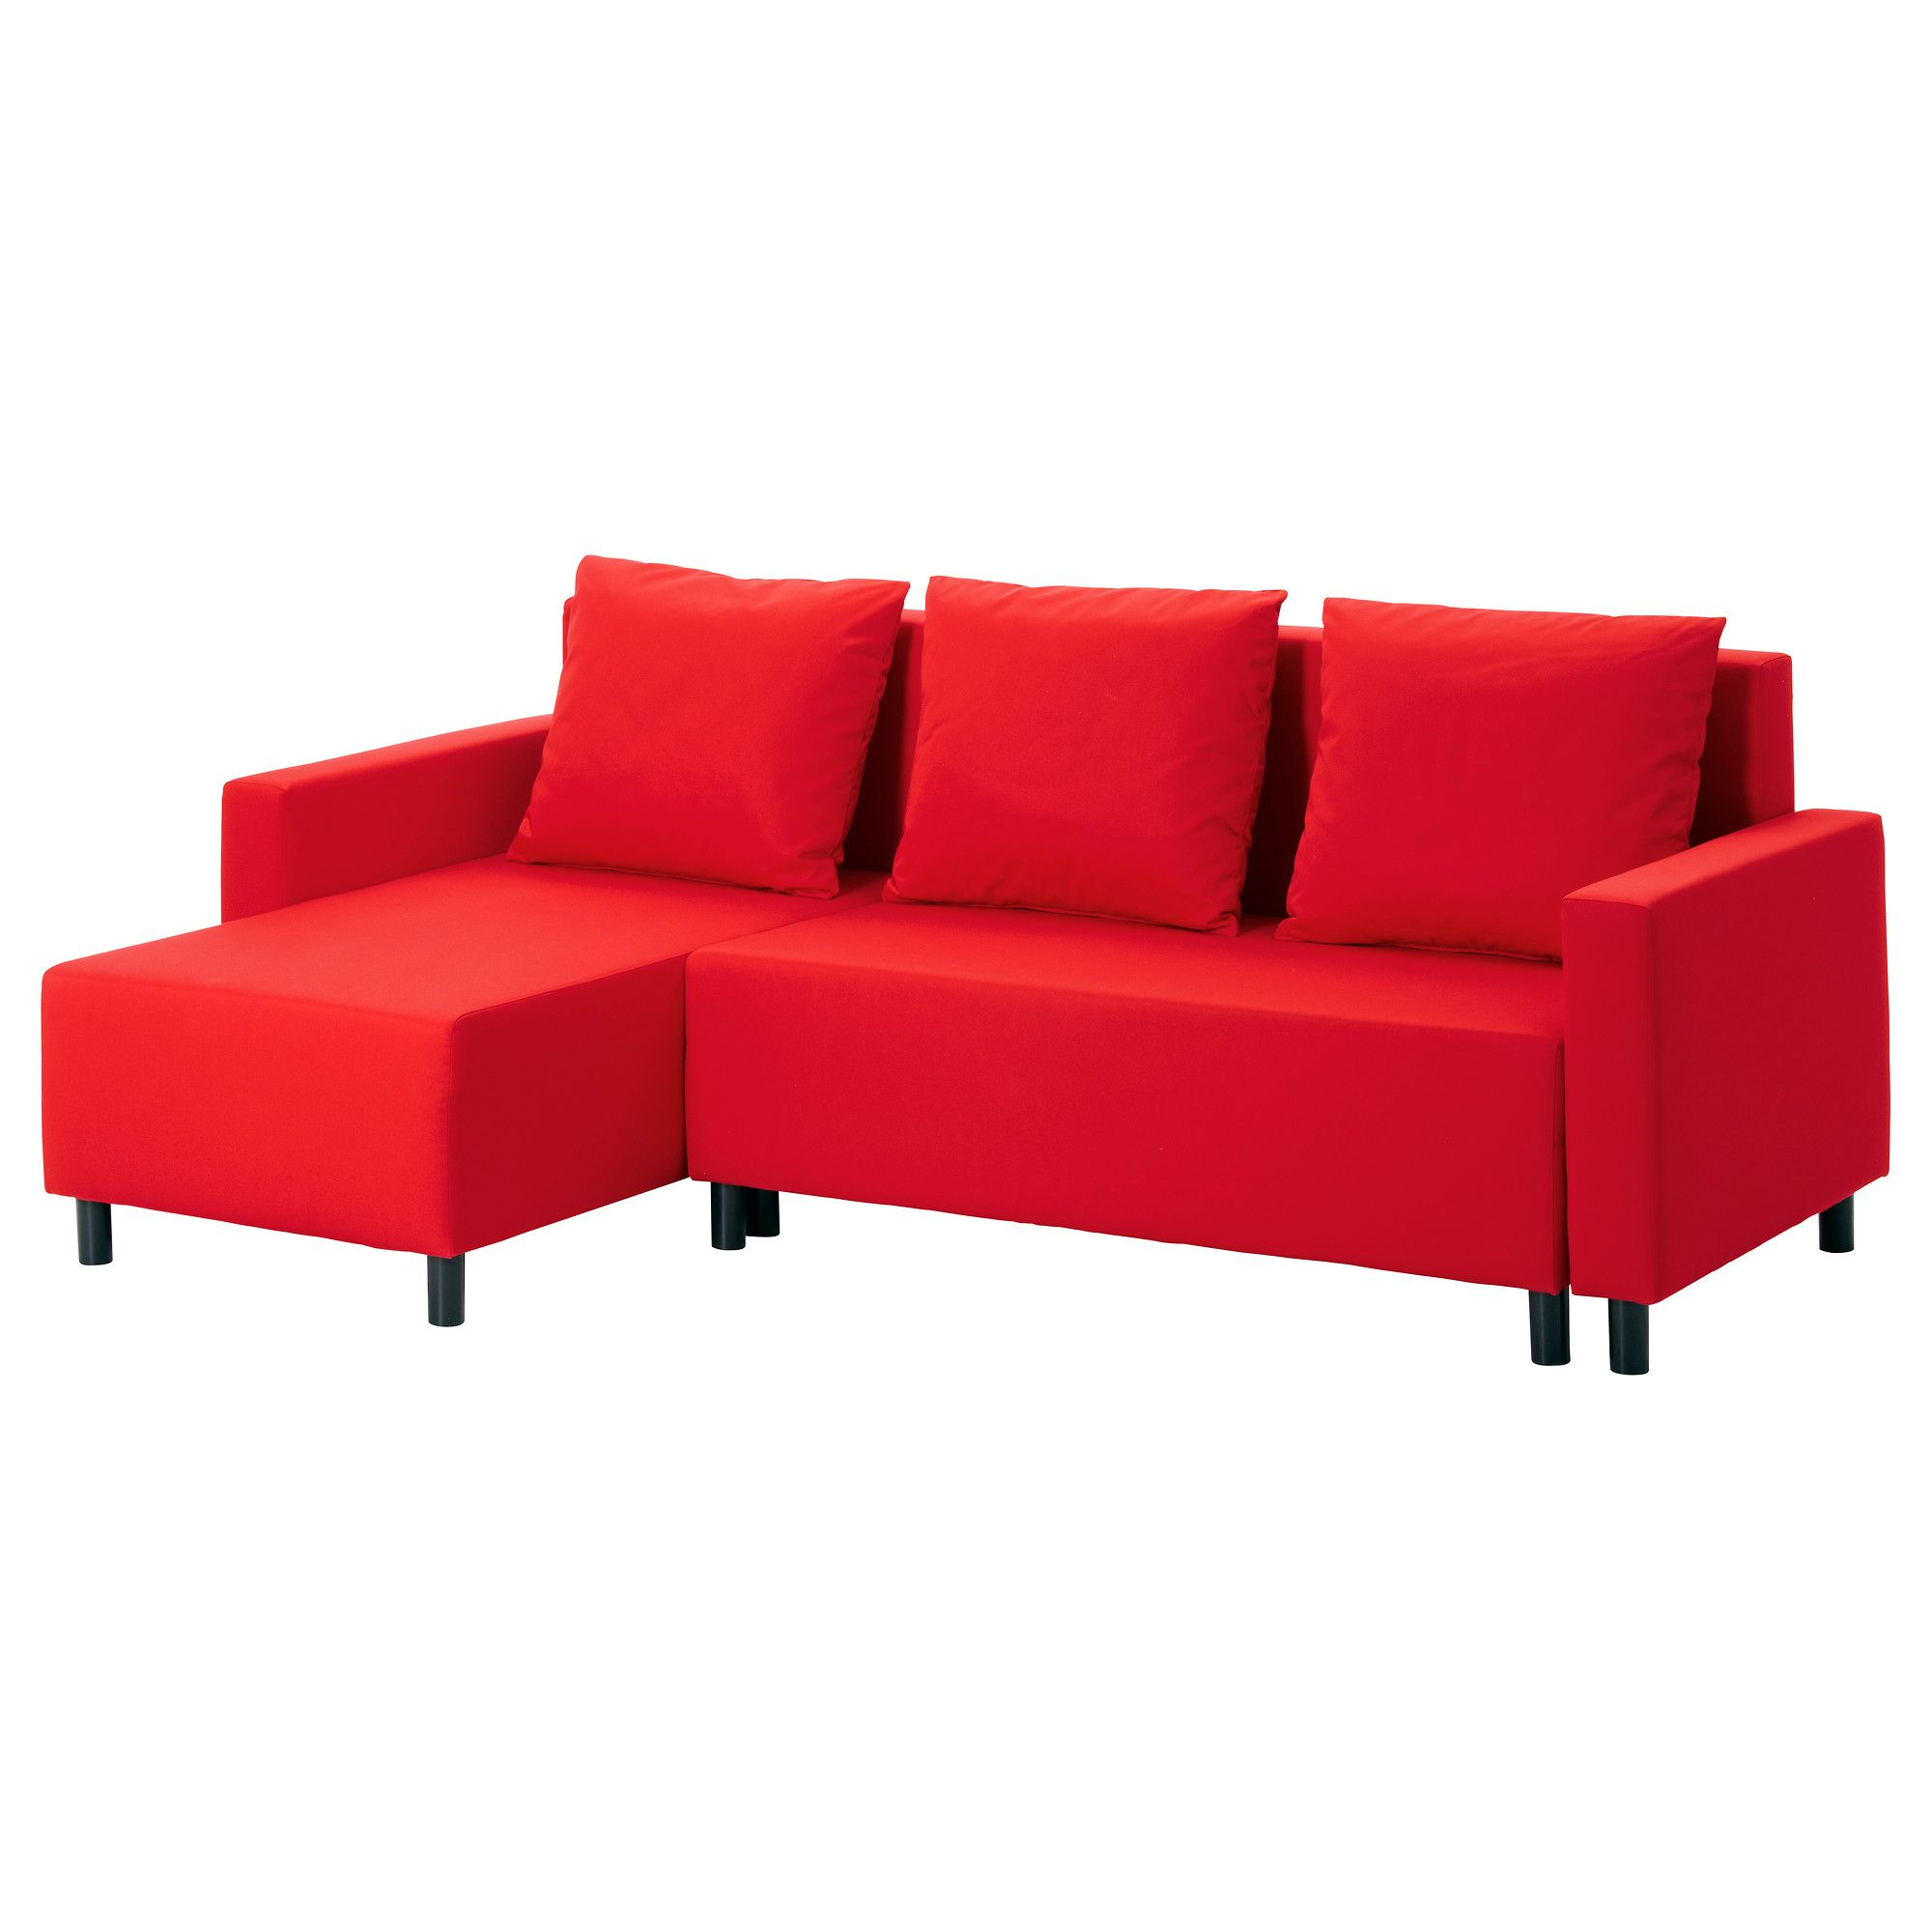 chaise sofa bed ikea gamma leather sectional lugnvik with lounge granan red pee wee